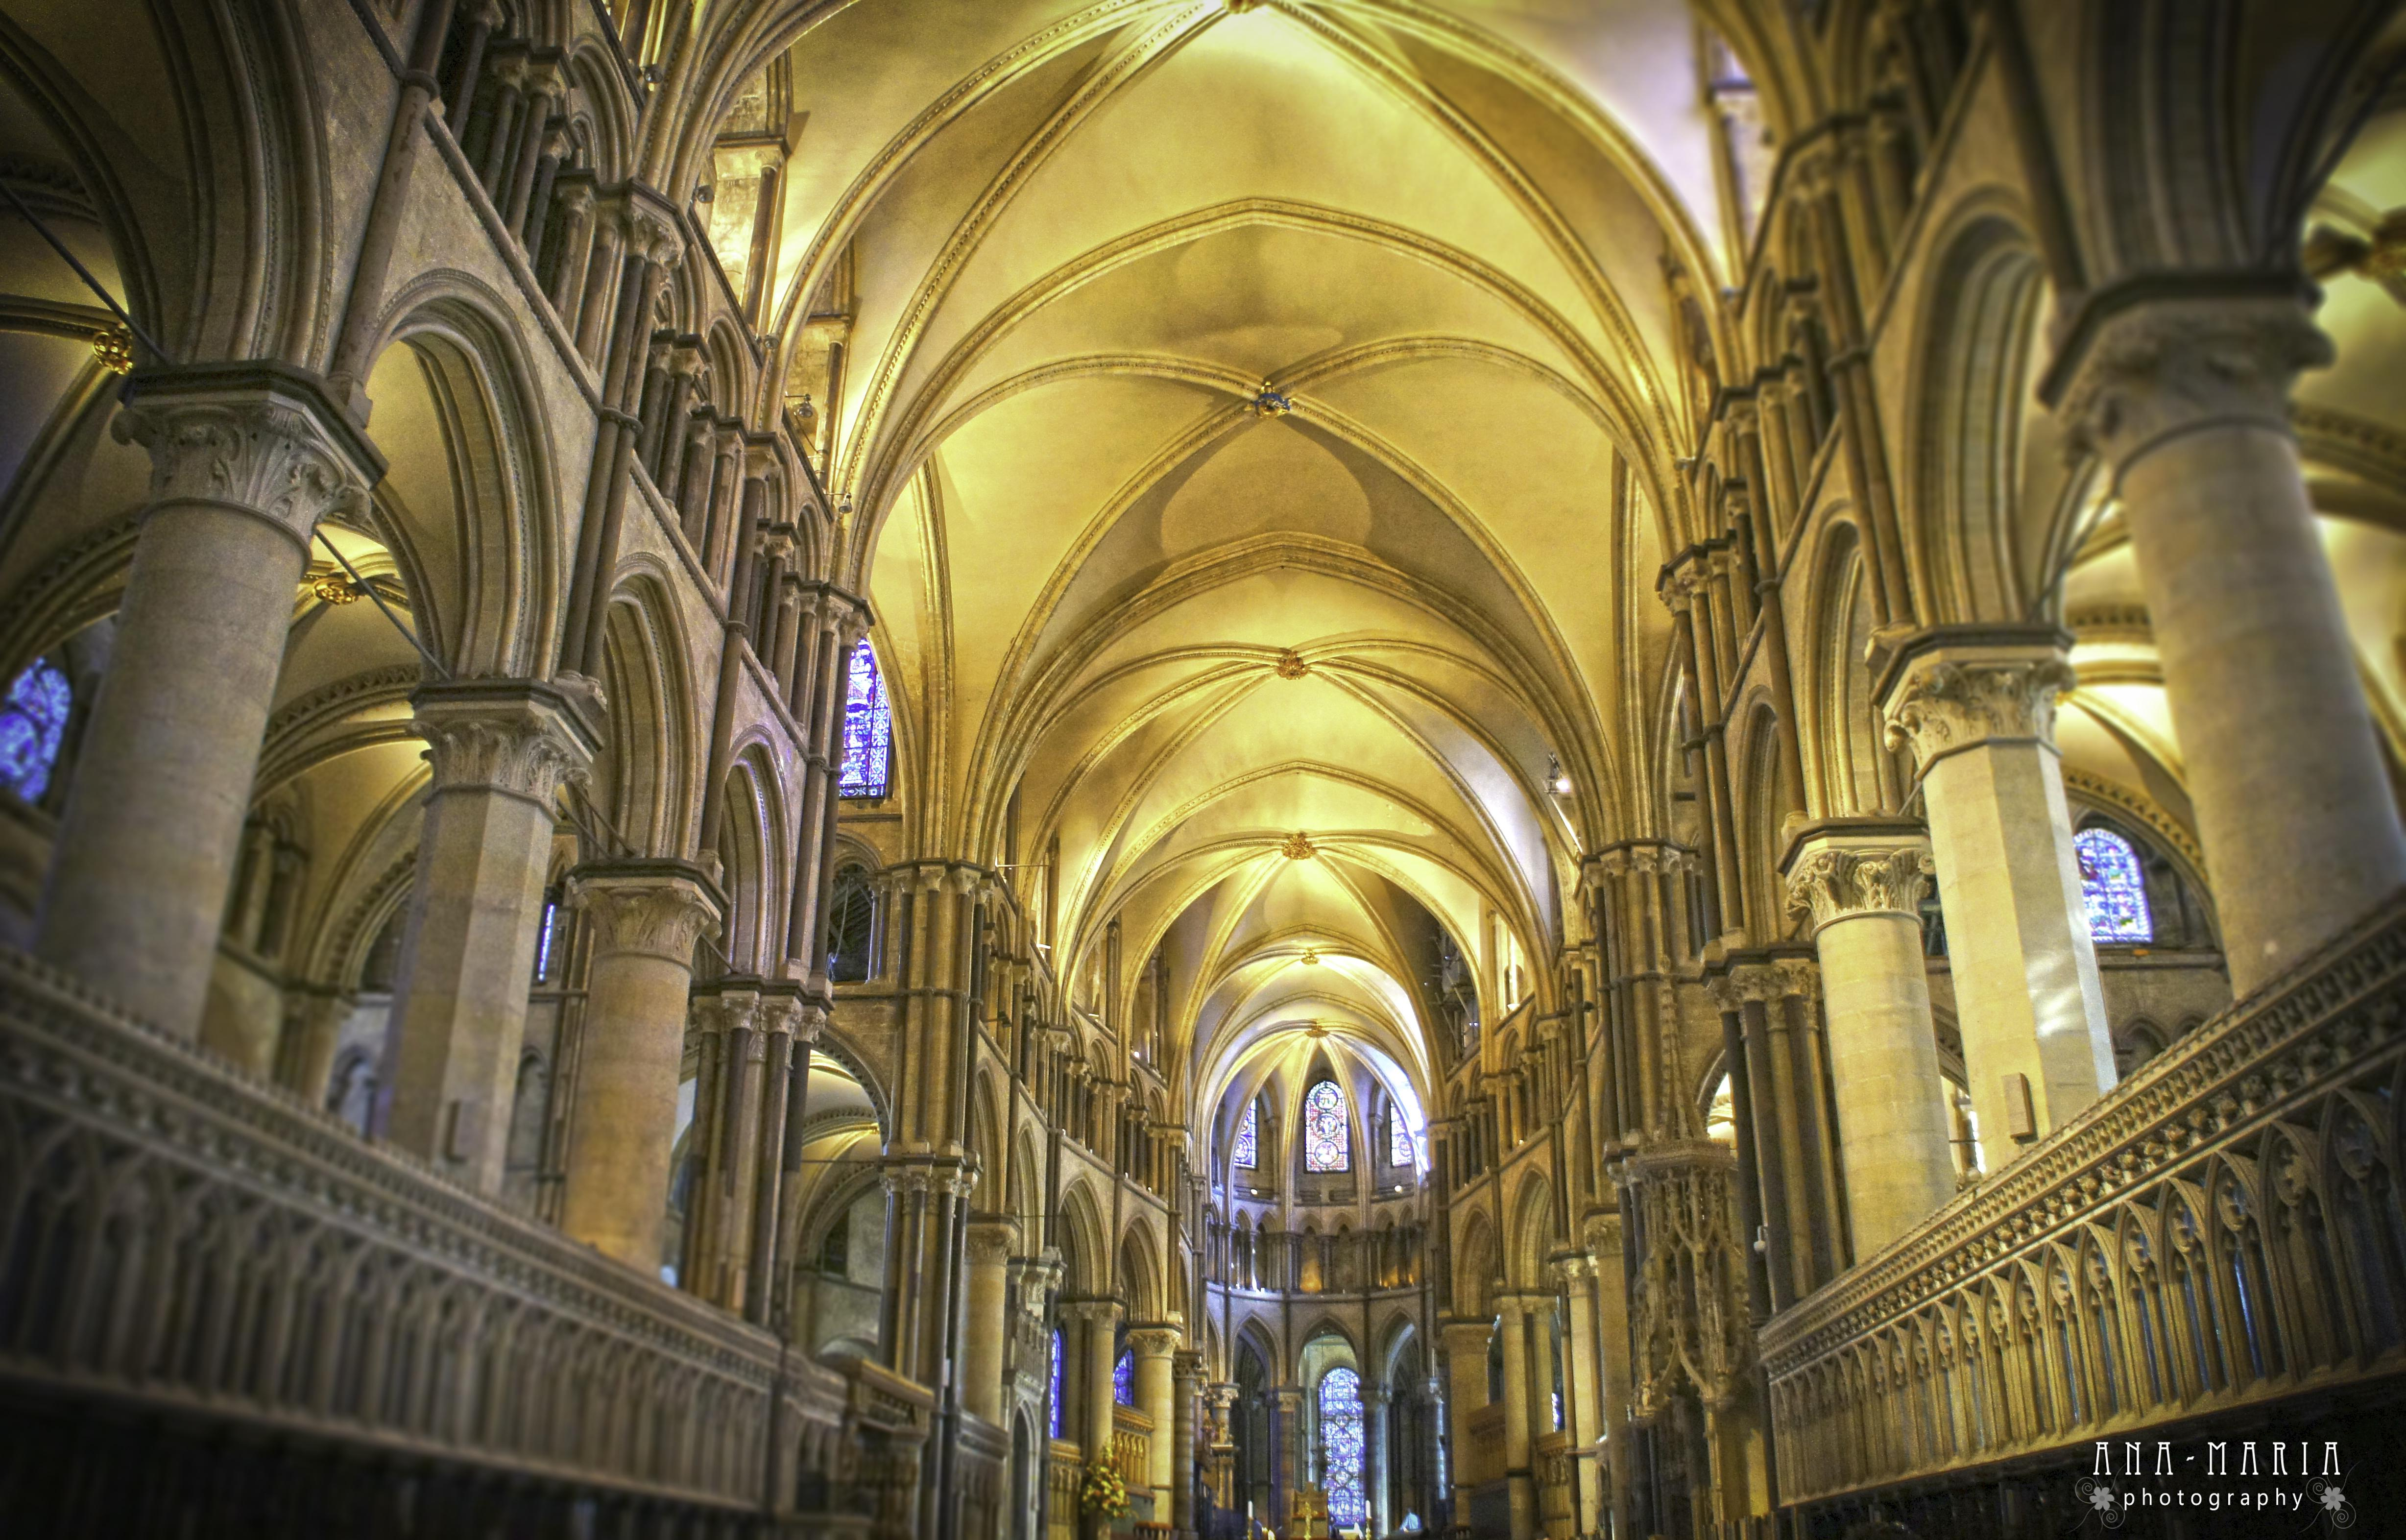 Inside Iphone X Wallpaper Inside Canterbury Cathedral 4k Ultra Hd Wallpaper